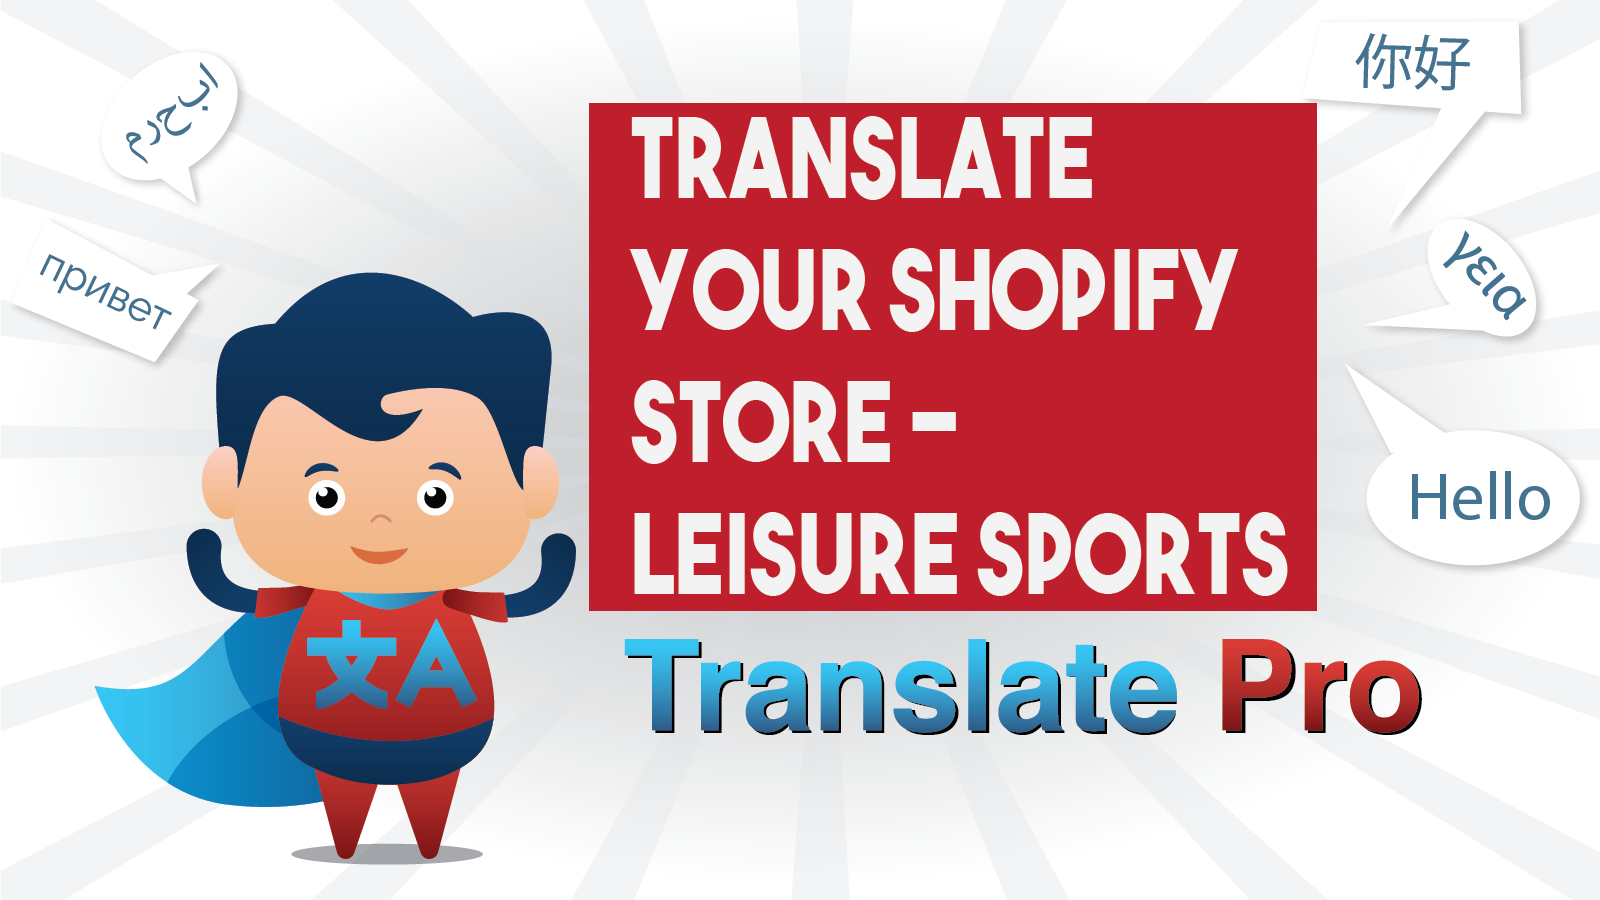 How To Translate Your Shopify Leisure Sports Store